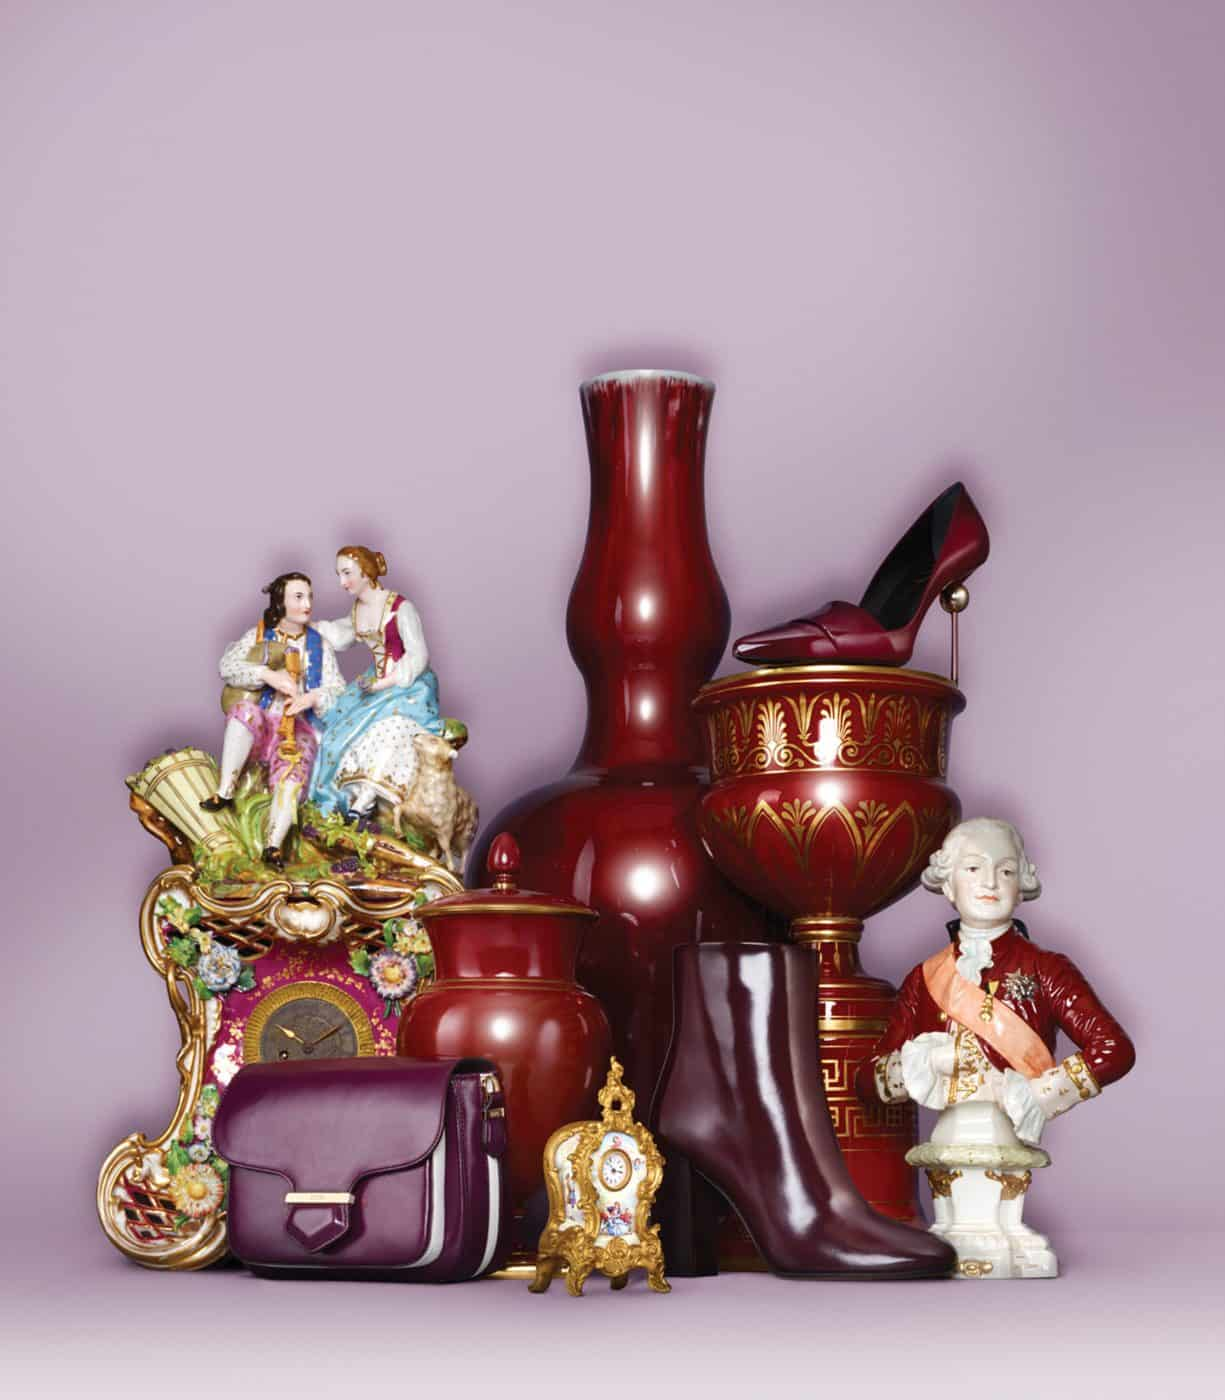 A tall ca. 1890 double-gourd vase and other tabletop decor provide a lavish backdrop for plum-colored accessories in an image from T Magazine